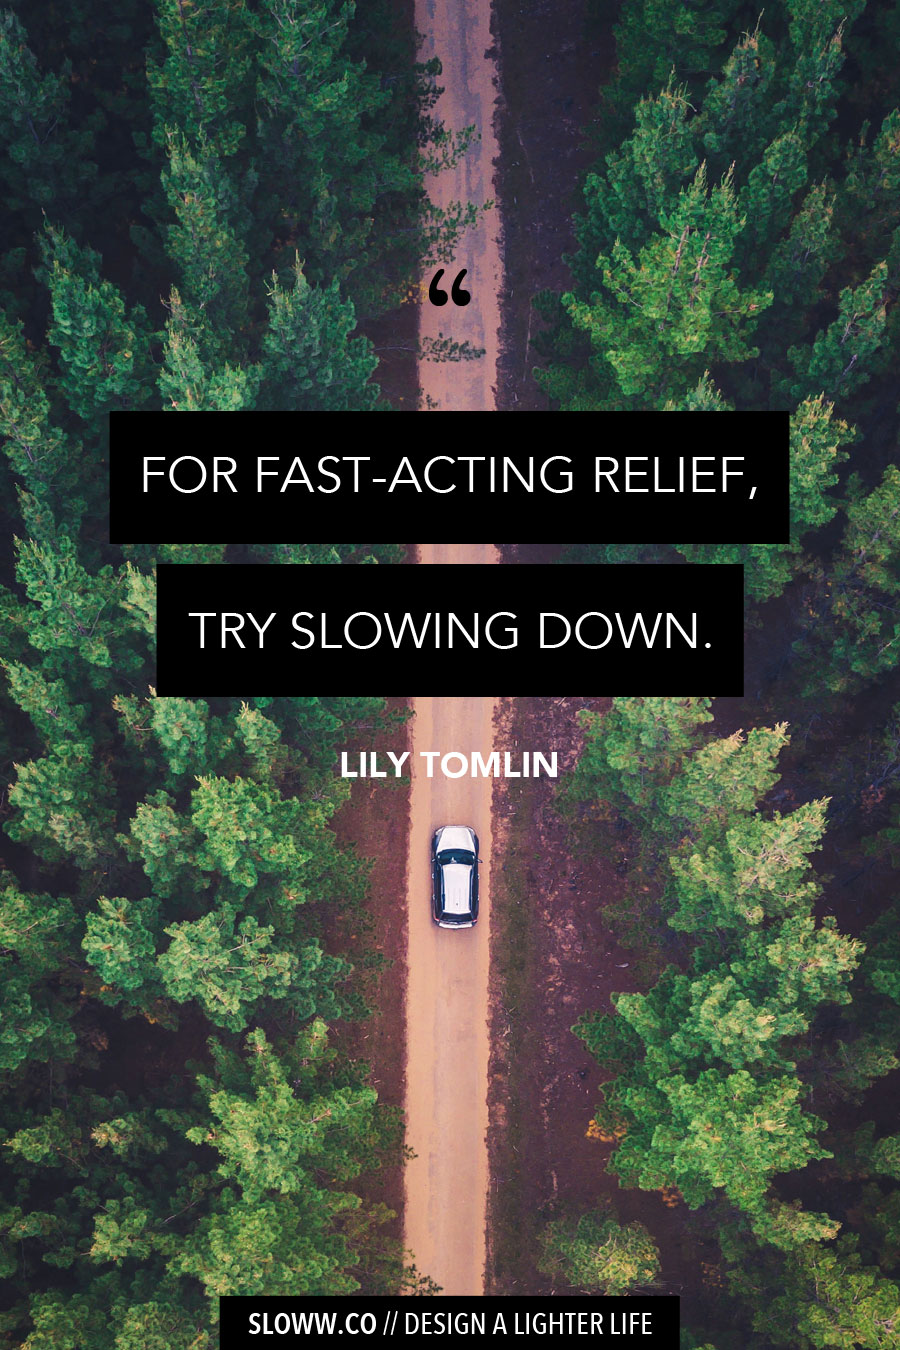 Sloww Fast-Acting Relief Quote